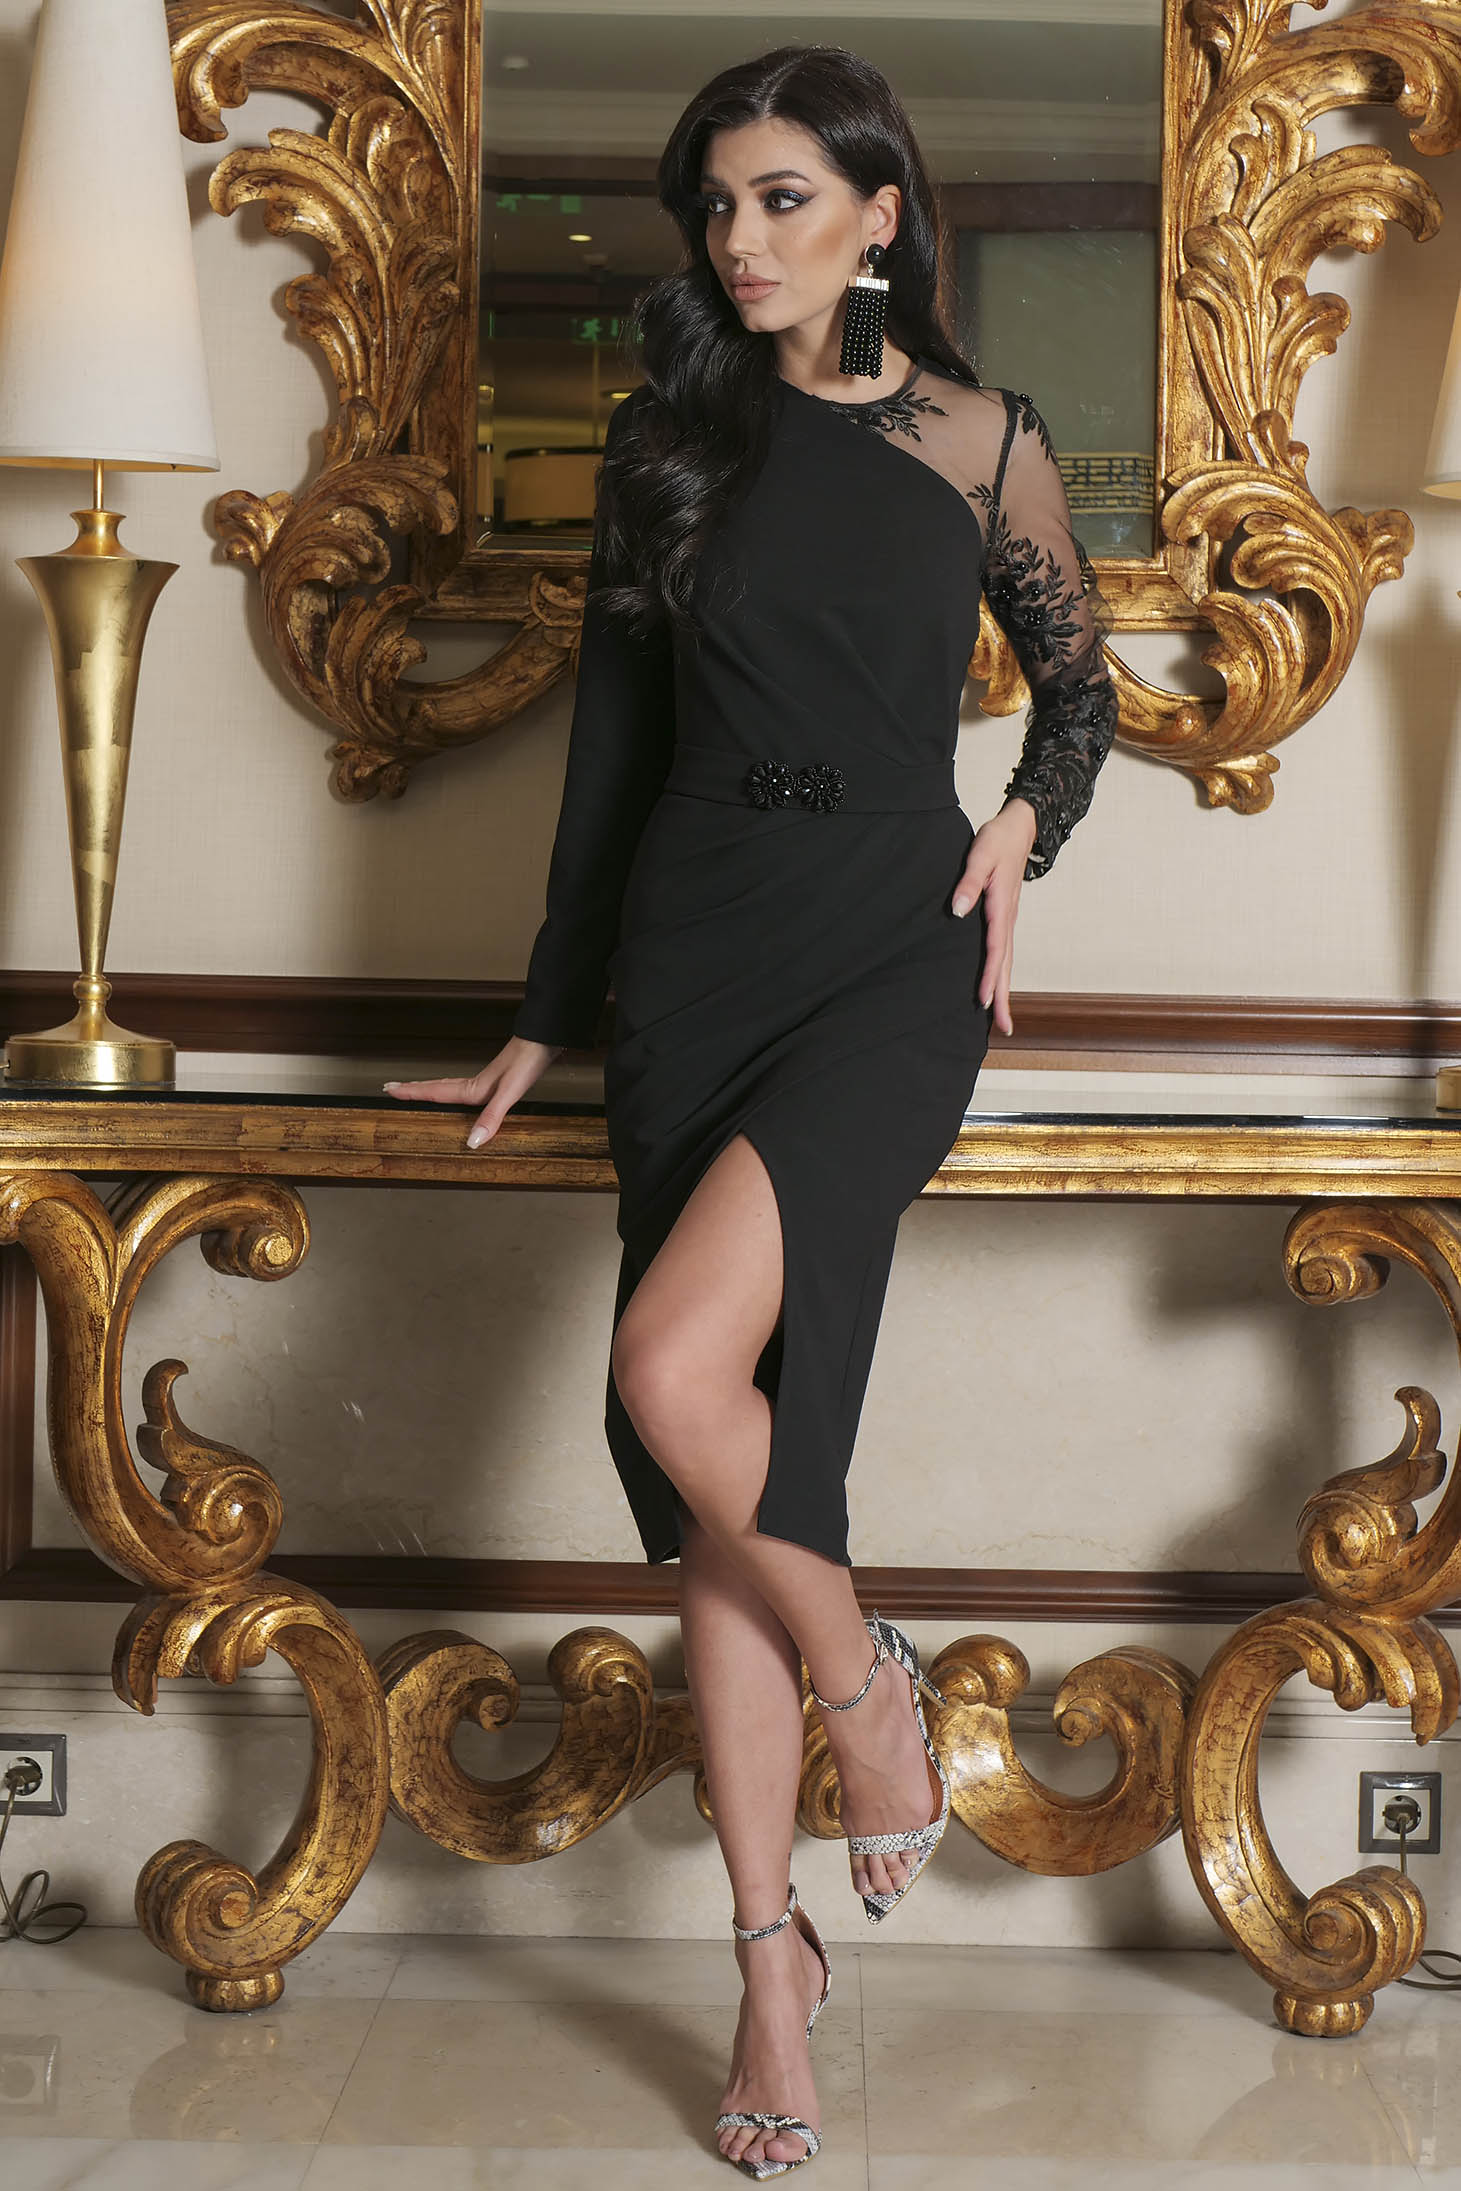 Black dress occasional short cut pencil laced cloth long sleeved